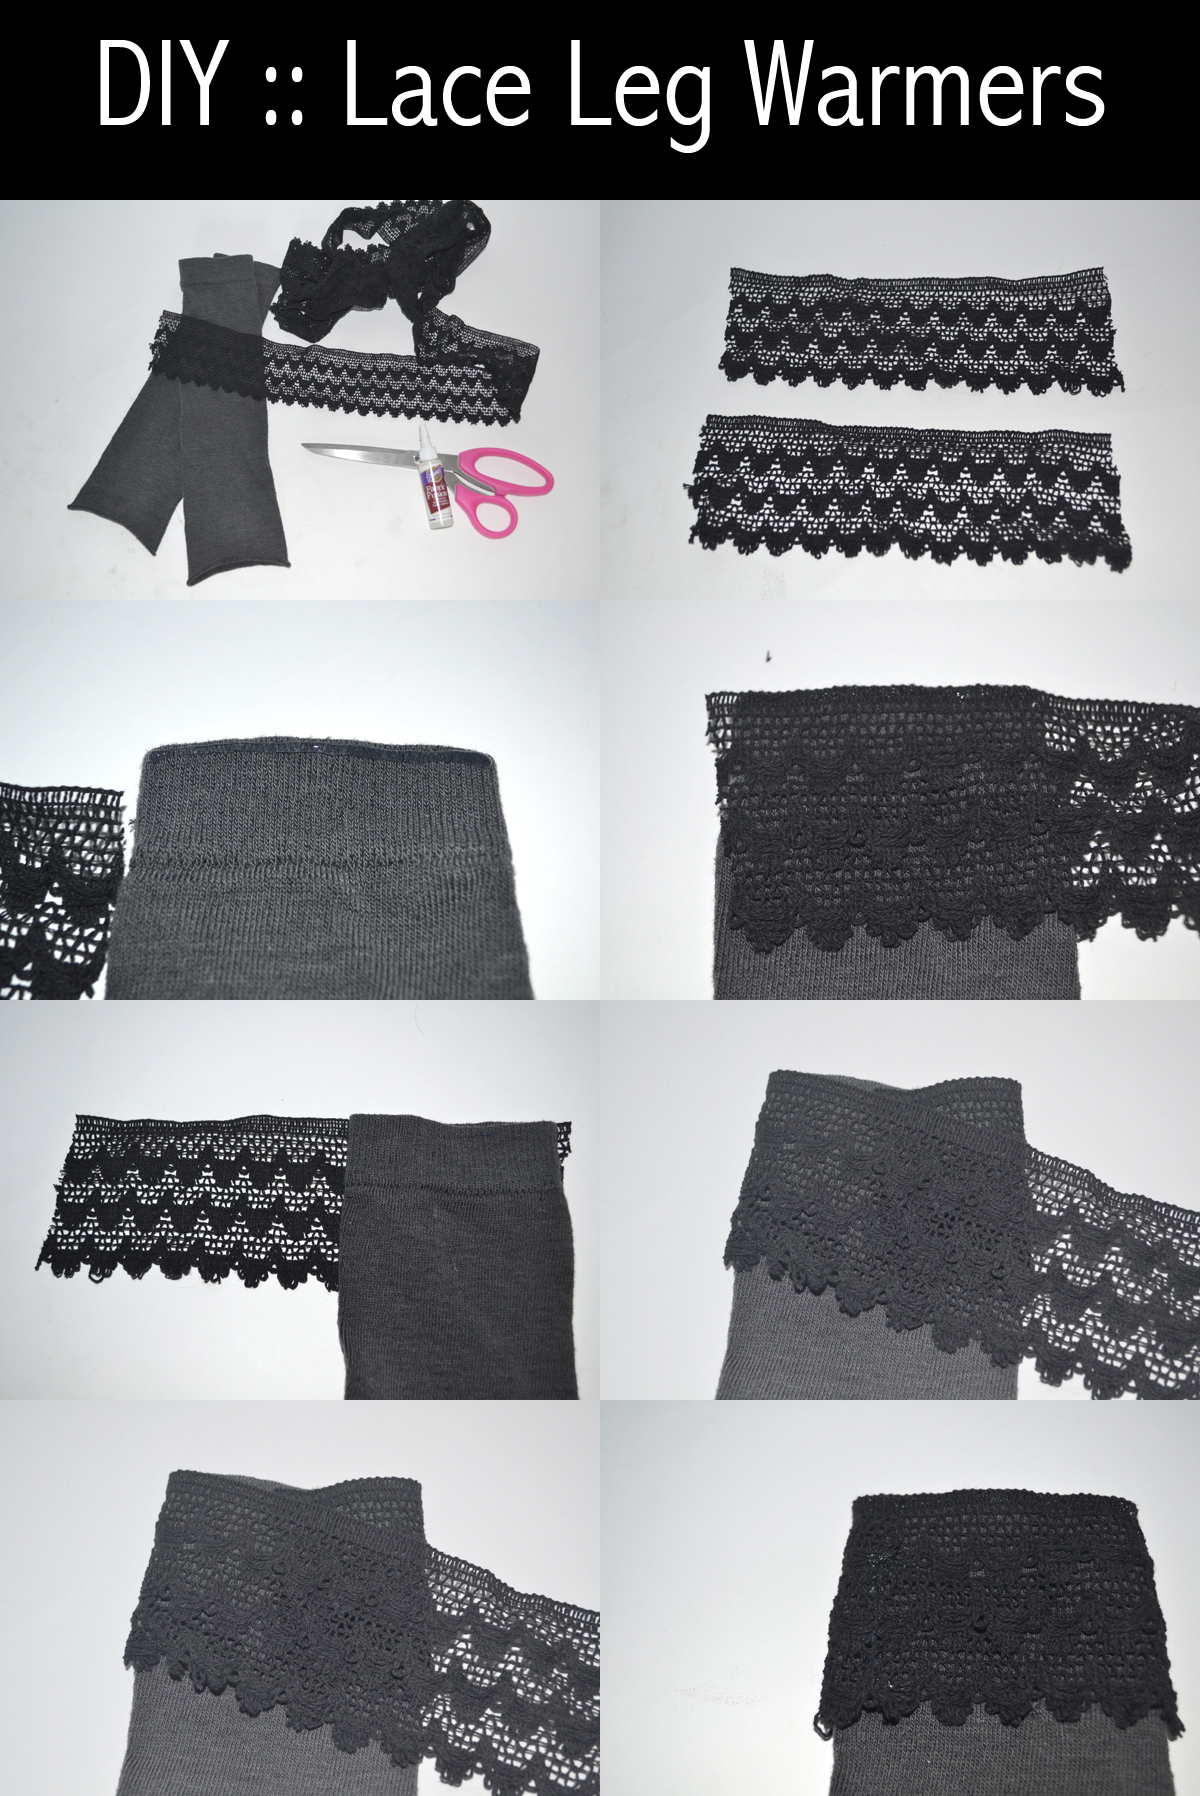 diy-lace-leg-warmers